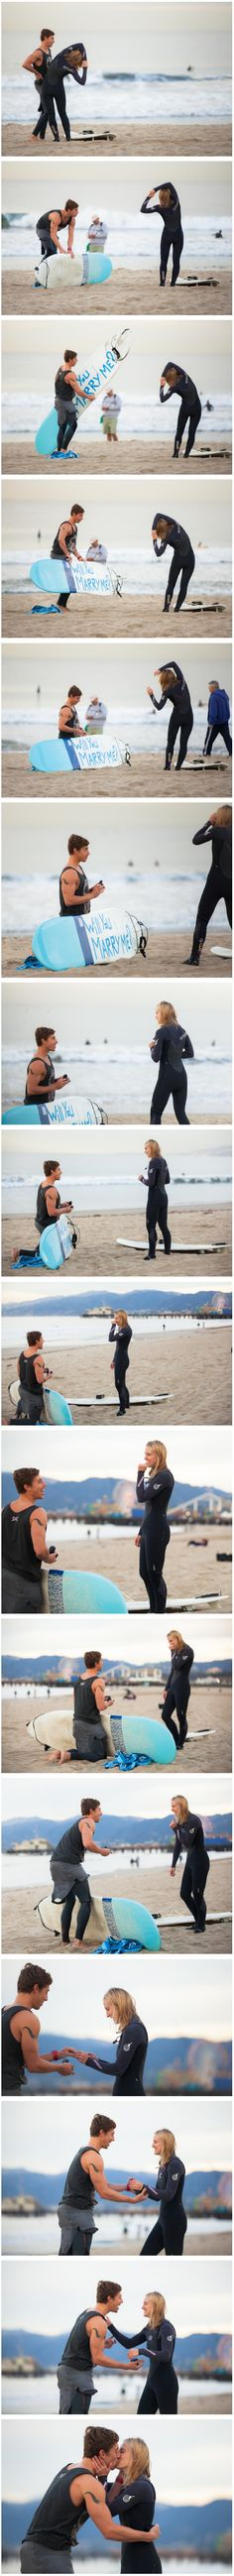 SUCH a cute surfing proposal: http://howheasked.com/surfing-marriage-proposal